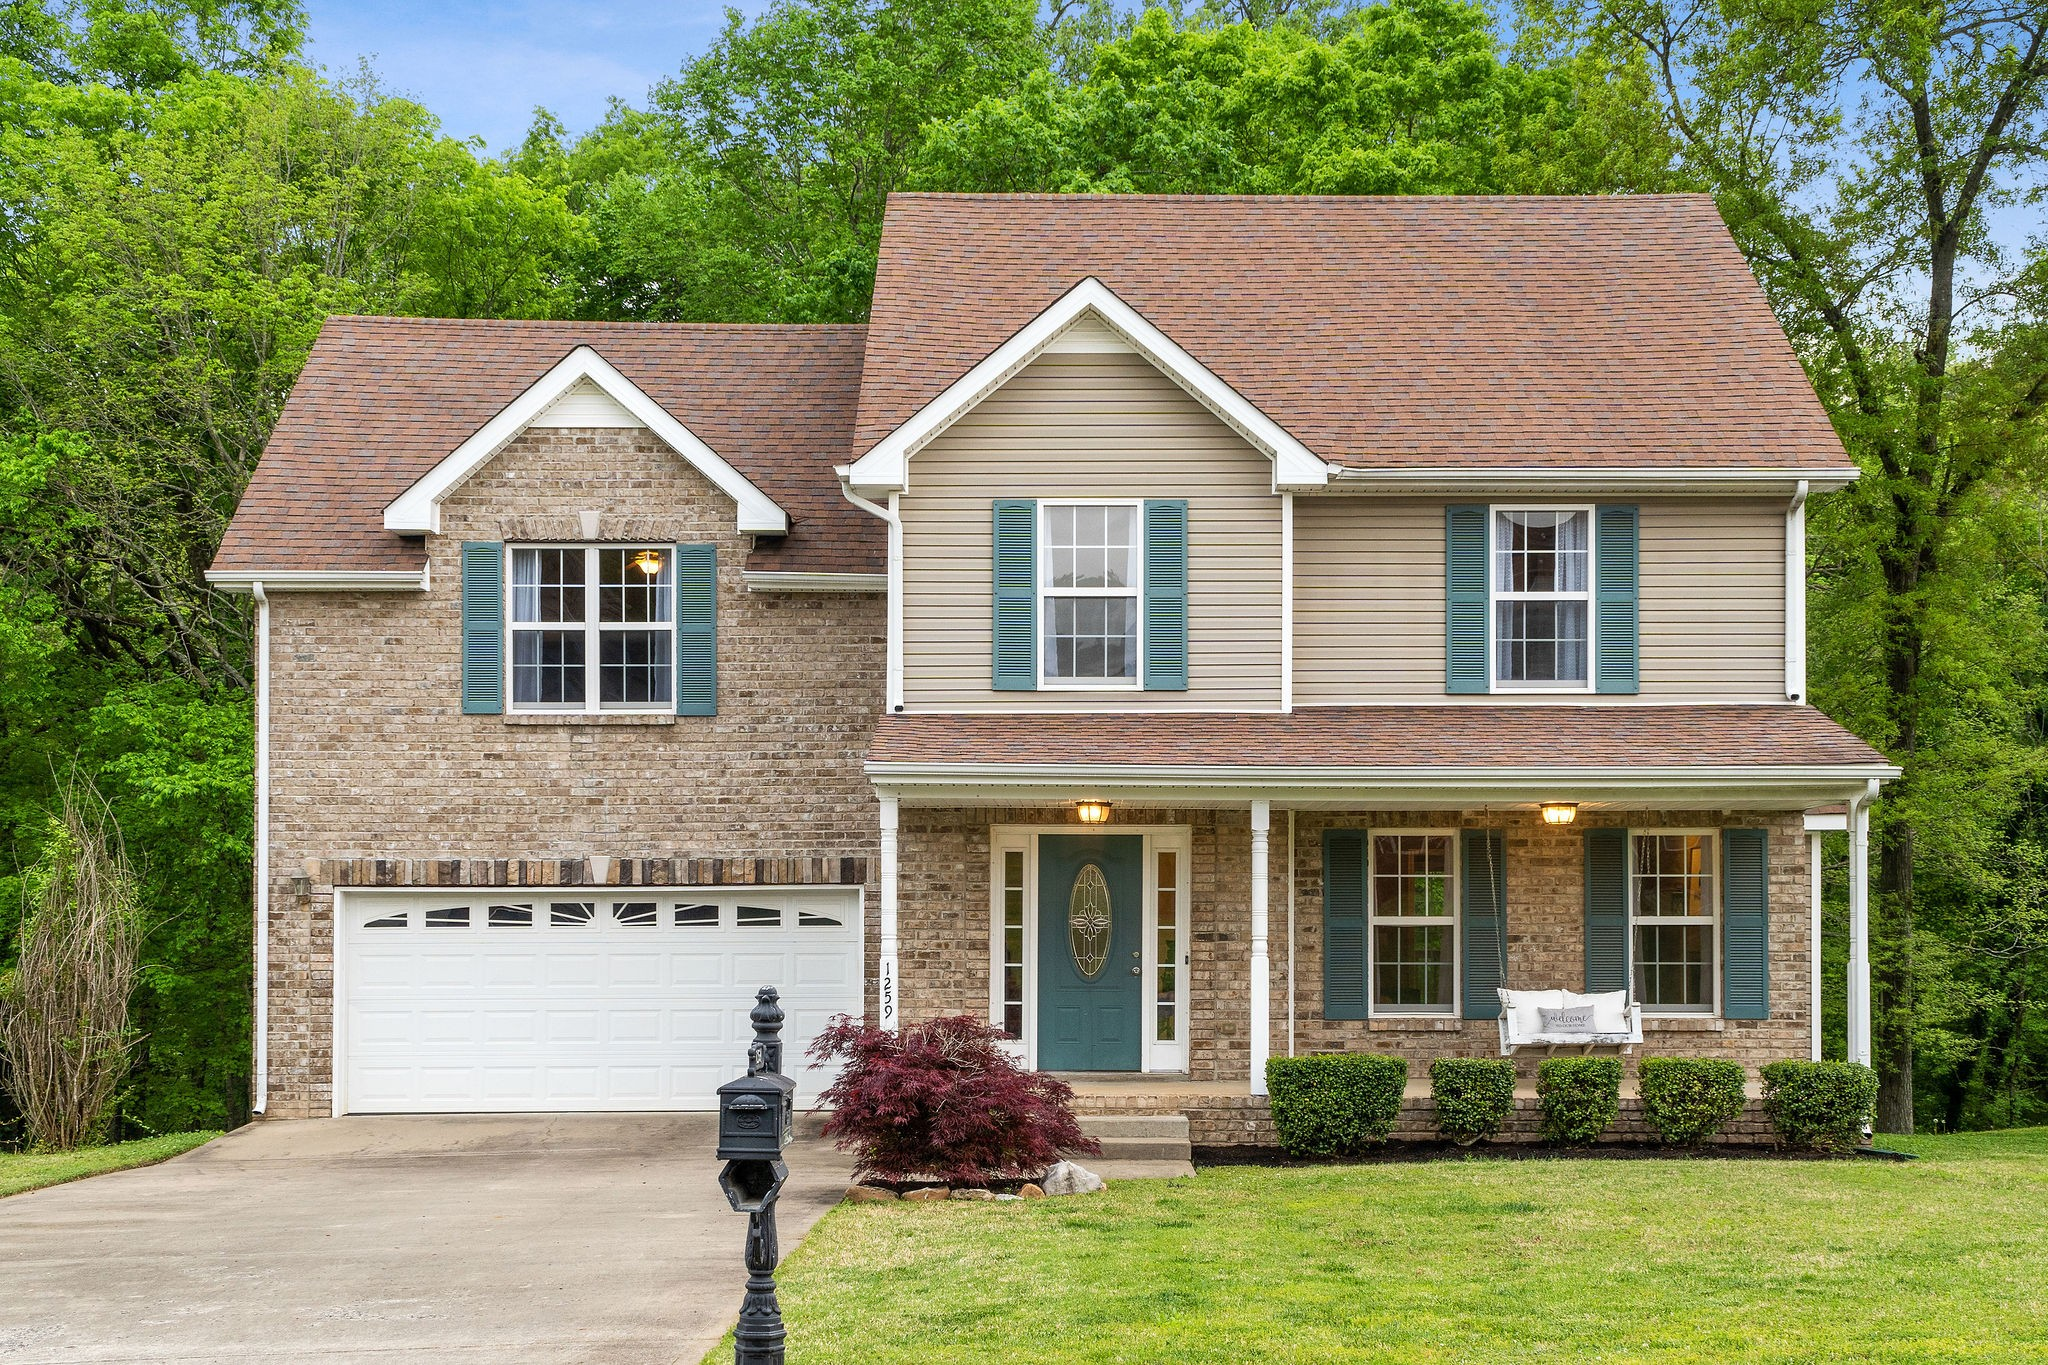 Welcome Home! 3 Beds plus Large Bonus Room on Gorgeous Lot - Hardwood Floors - Fully Fenced - Lot Extends Beyond Fence with No Back Neighbors - Formal Dining + Eat-in Kitchen - Come See Today! Offer Deadline Sunday May 2nd at 4pm!